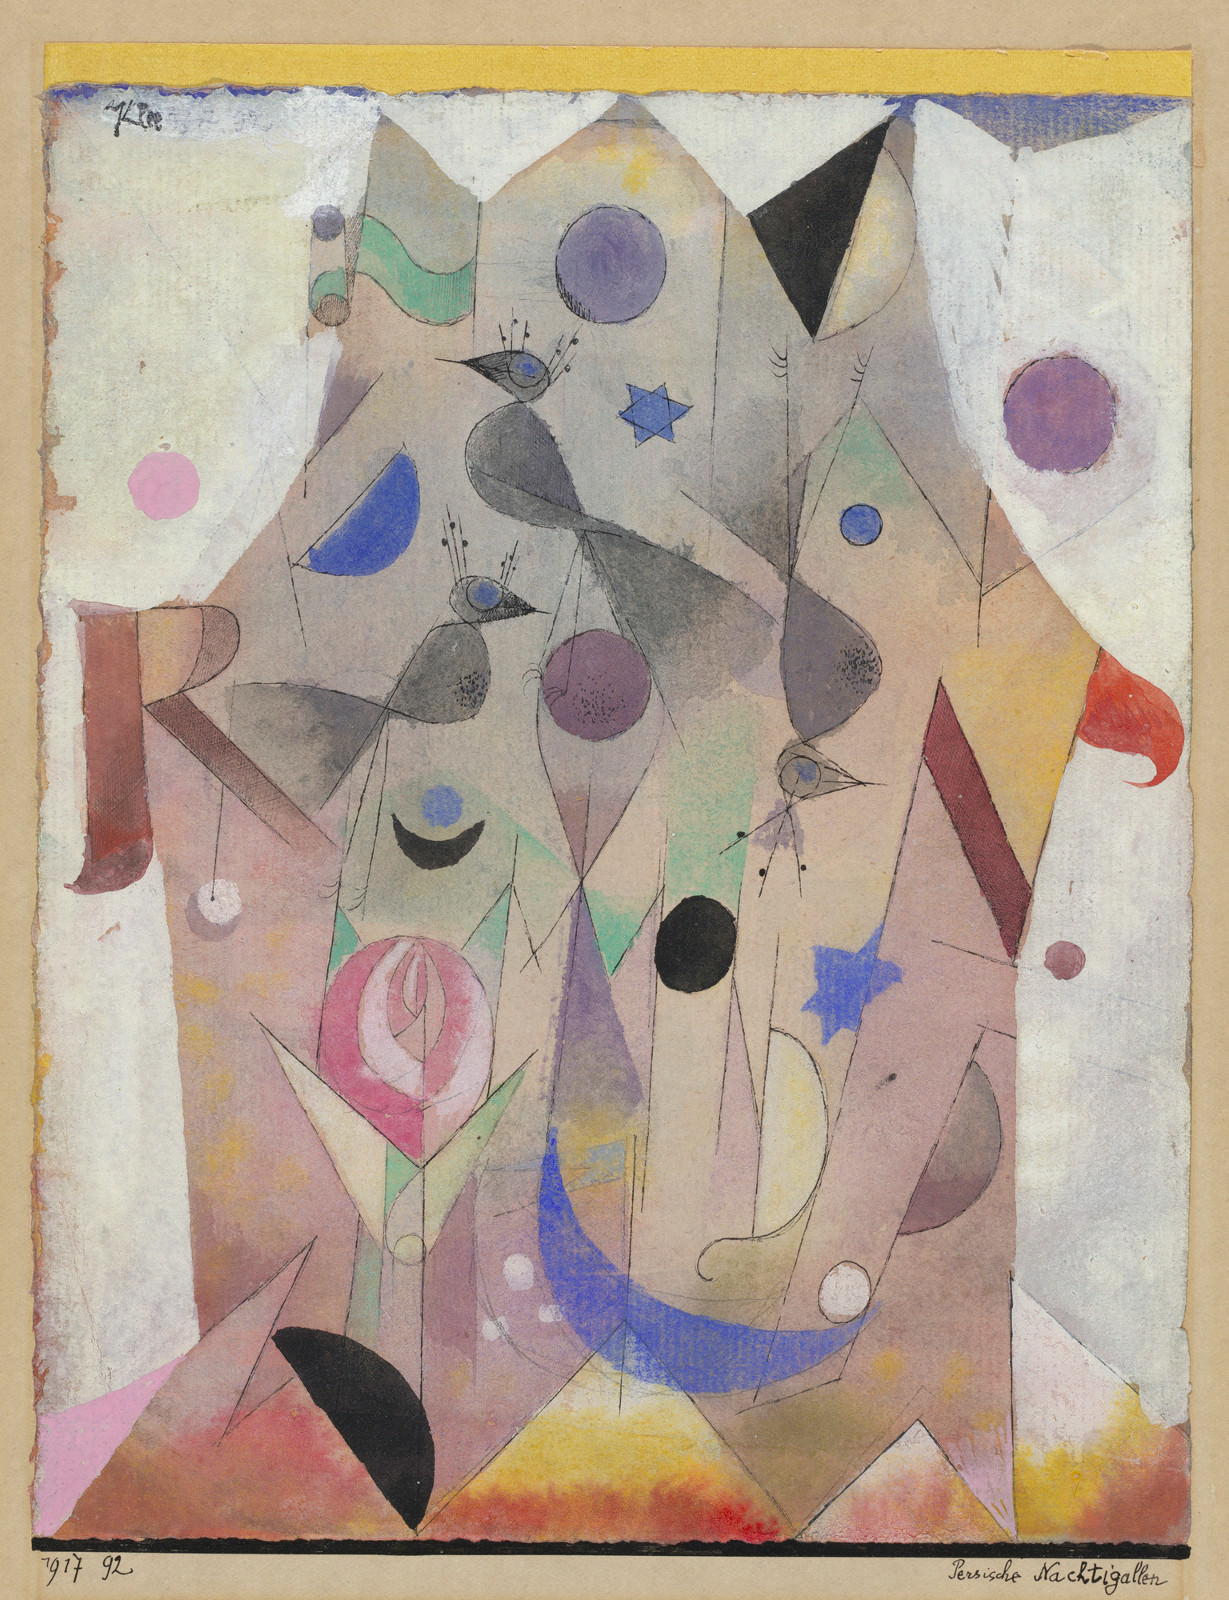 Fig. 9 – Paul Klee, Rouxinóis Persas, 1917, Guache, aquarela, caneta e tinta preta sobre grafite sobre papel, montadas em cartolina; a folha bordada na parte superior com tira de papel amarela montada para apoiar, geral: 22.8 x 18.1 cm (9 x 7 1/8 in.). National Gallery of Art, Washington. Presente de Catherine Gamble Curran and Family, em honra do 50º aniversário da National Gallery of Art.